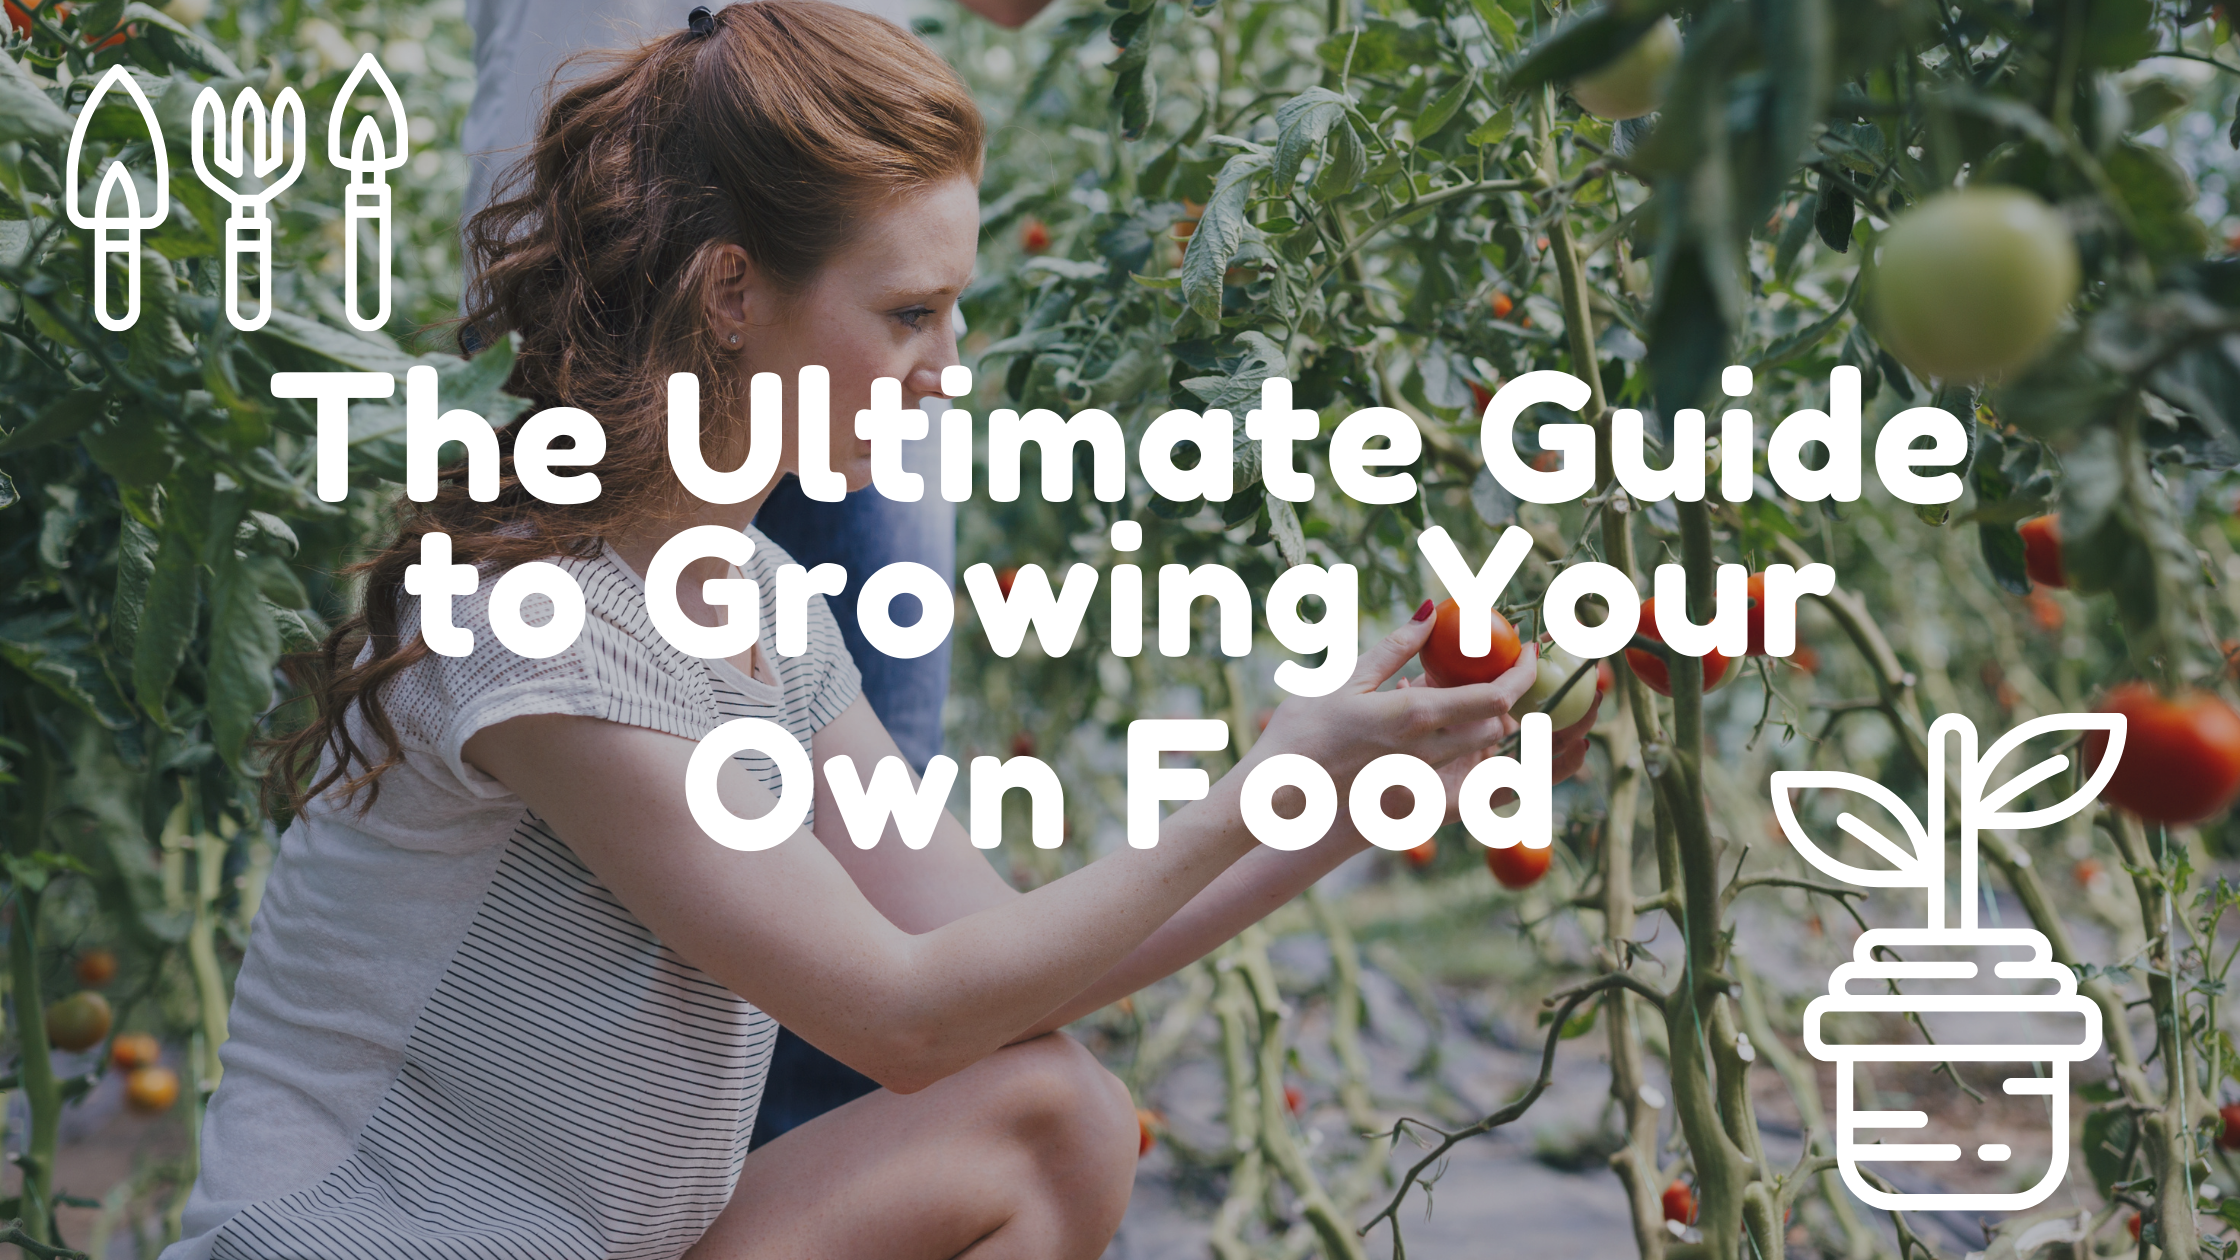 The Ultimate Guide to Growing Your Own Food banner